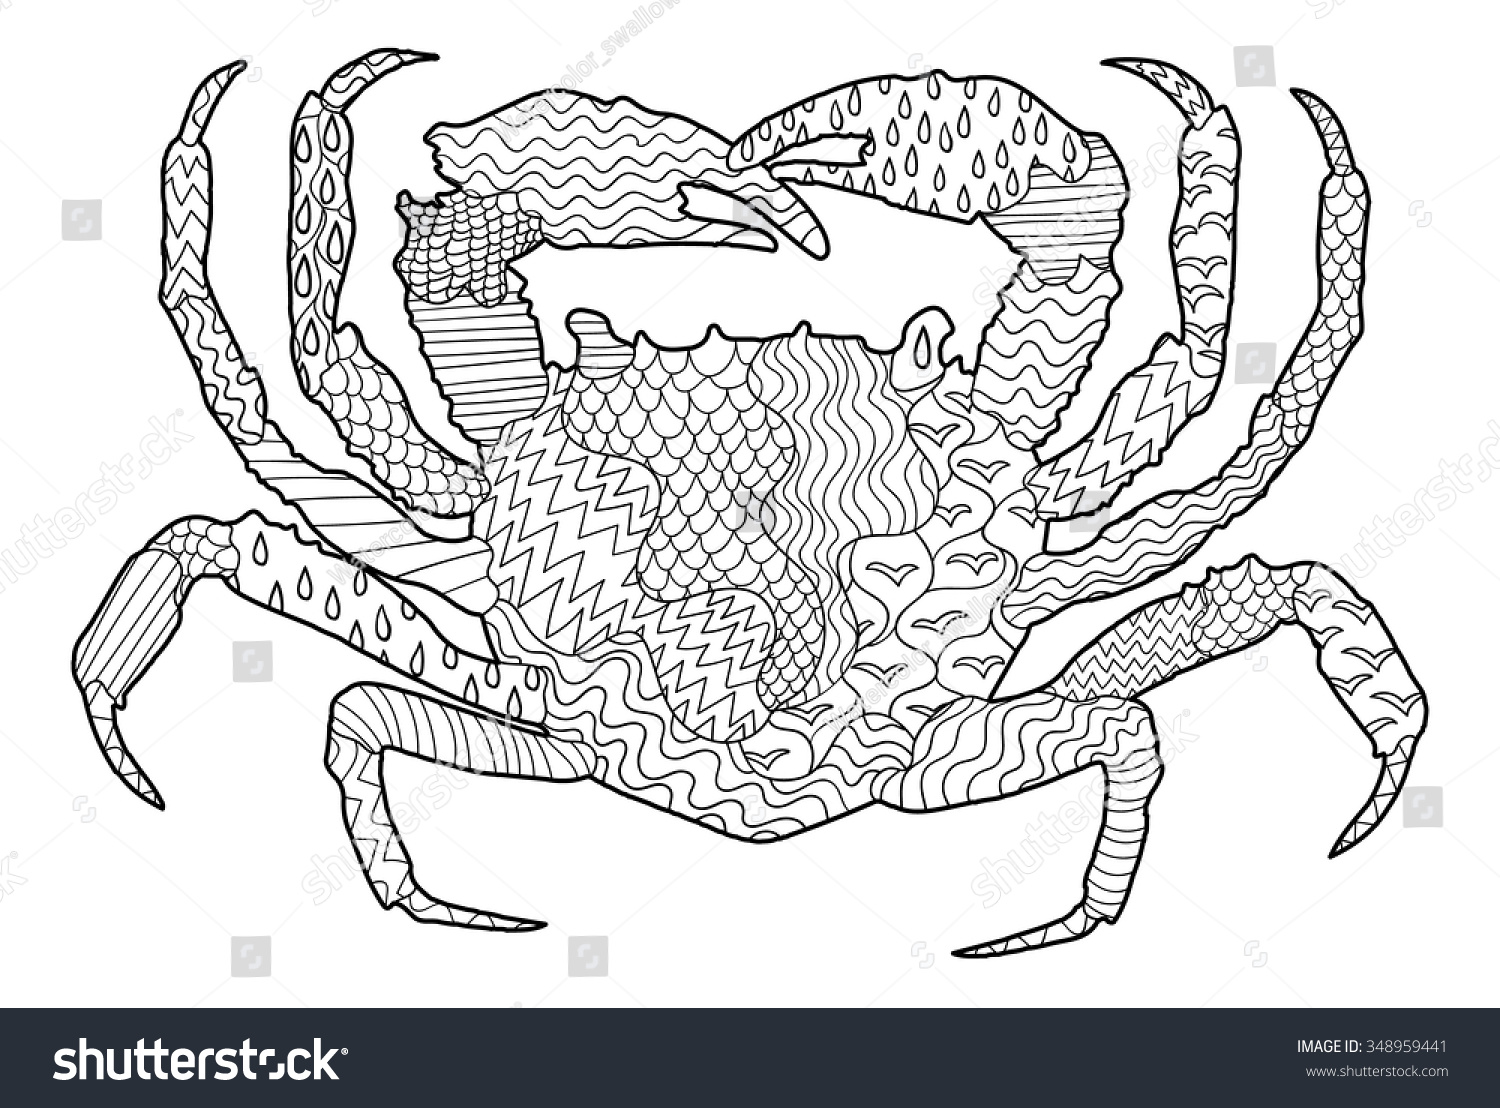 Sea Crab With High Details Adult Antistress Coloring Page Black White Hand Drawn Doodle